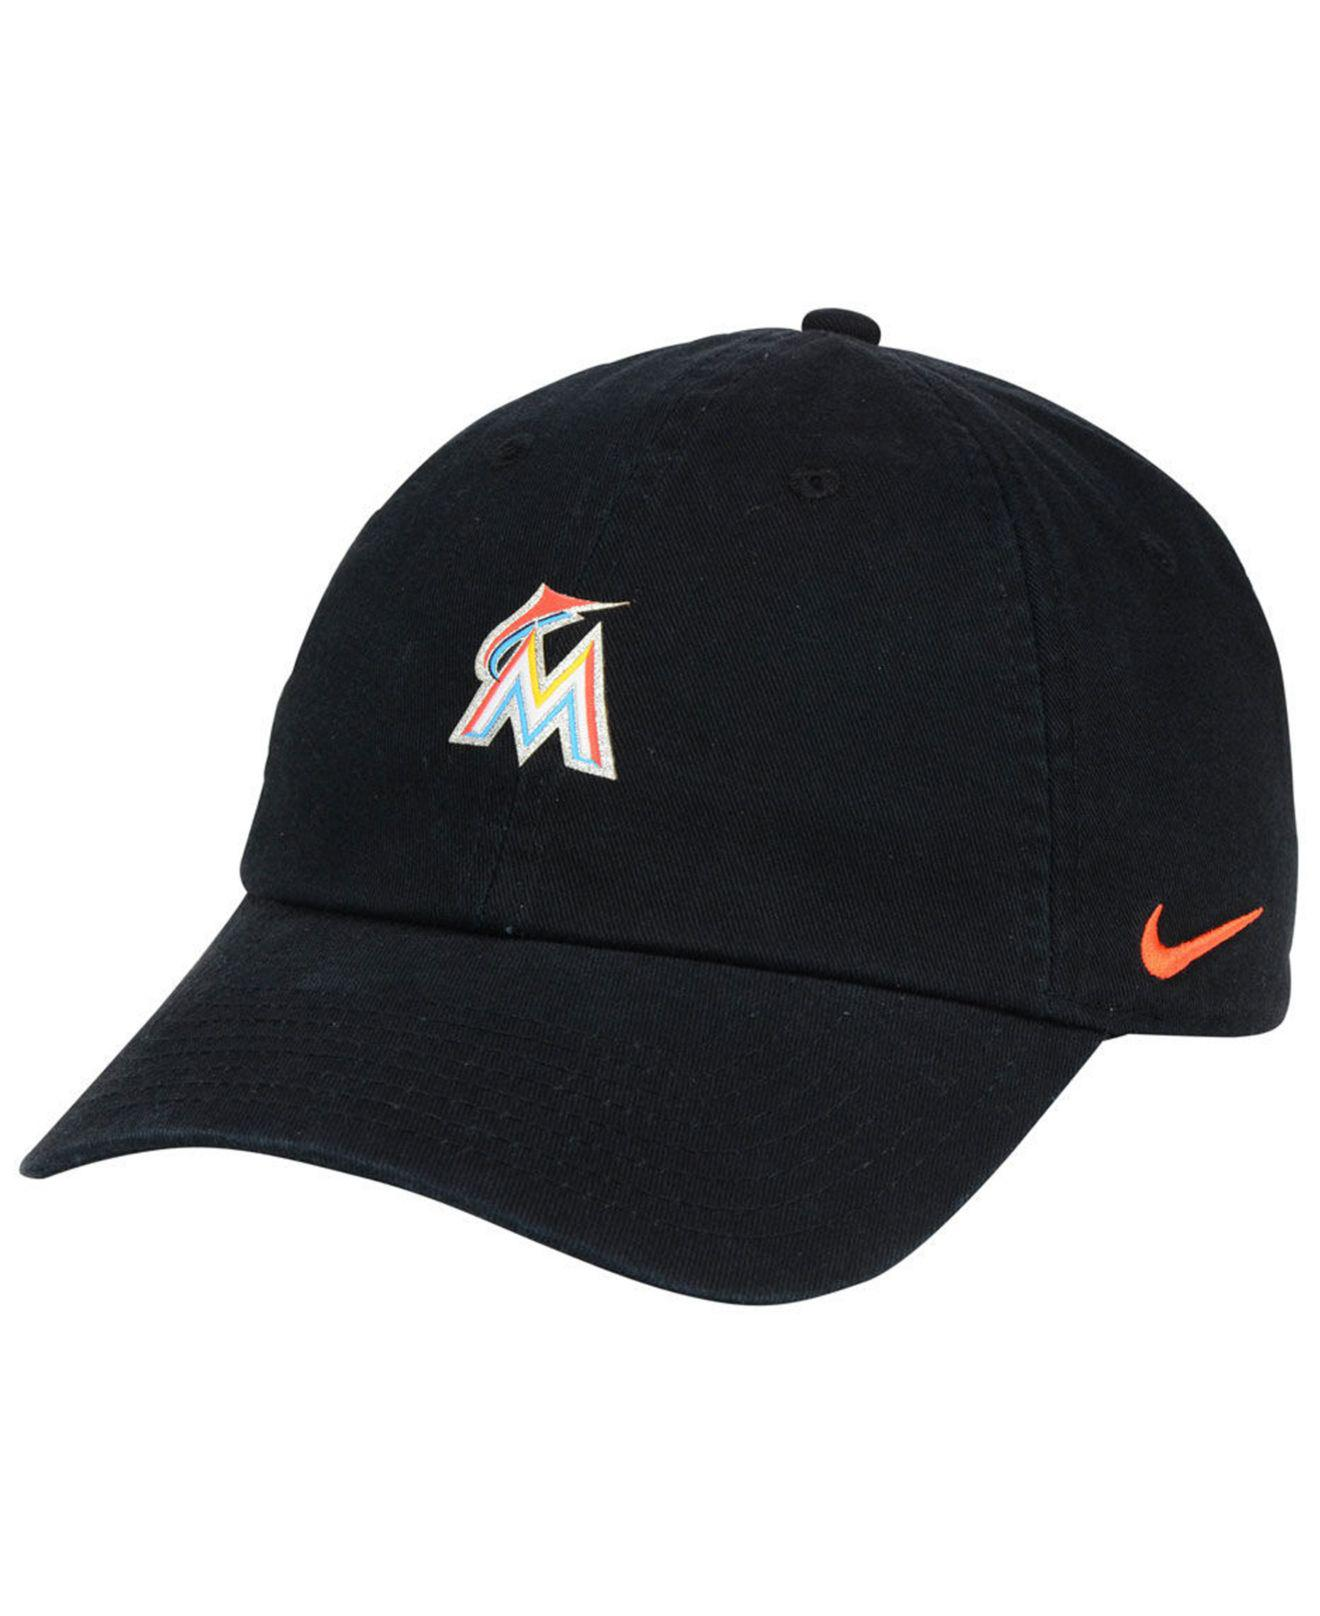 best sneakers ce0f9 bd20c sweden texas rangers 47 mlb youth basic snapback cap 89afd 6c676  cheap nike.  mens black miami marlins micro cap 3e515 6aced